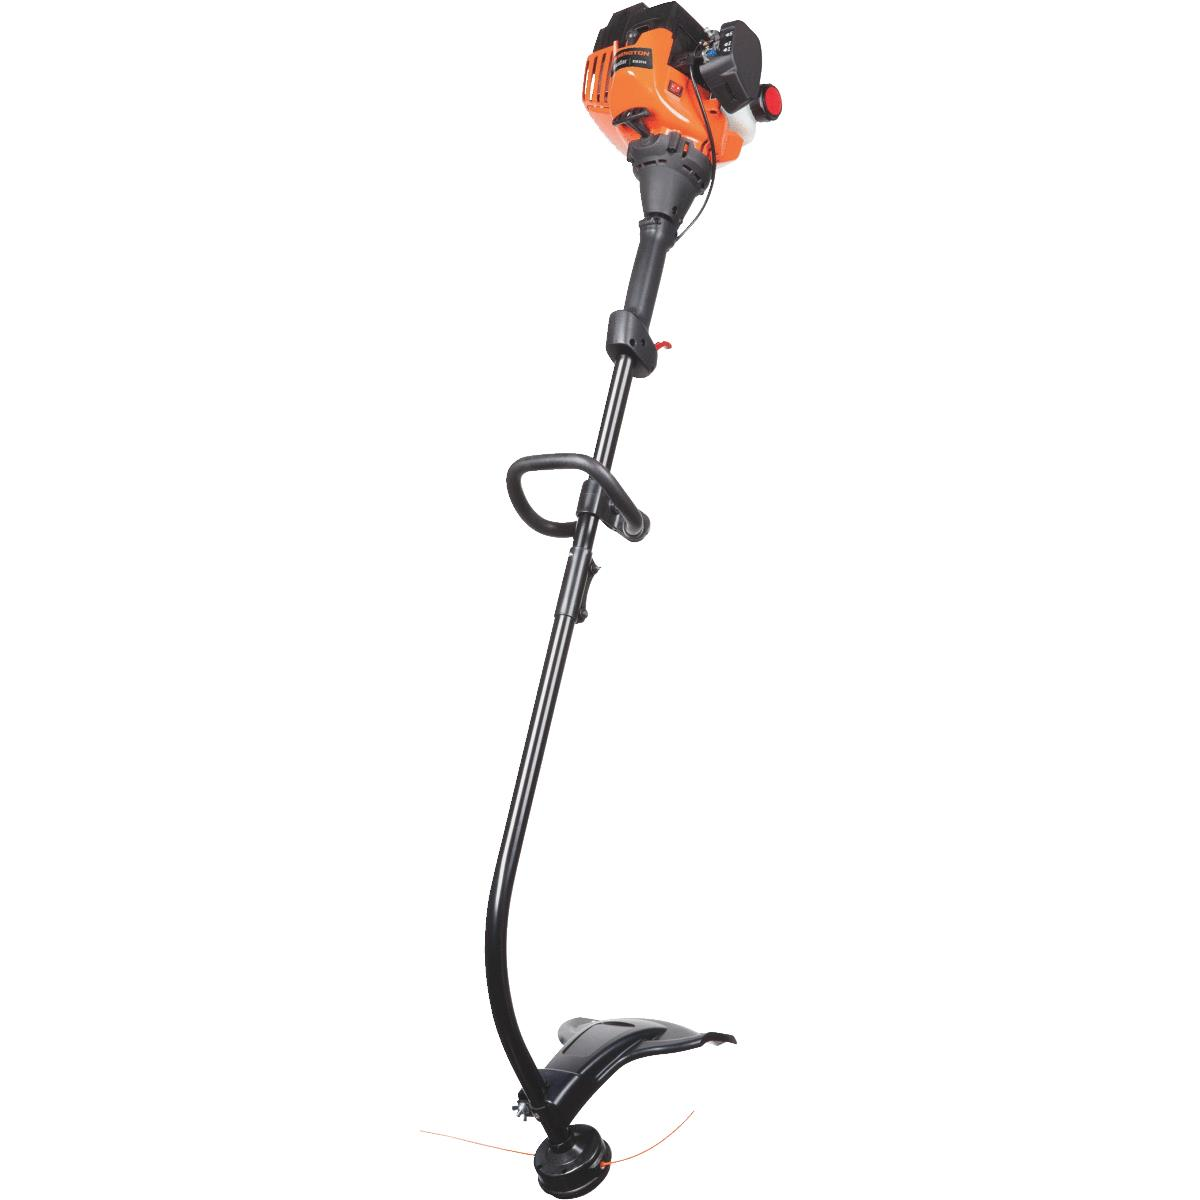 Buy Remington RM2510 16 In. Curved Shaft Gas String Trimmer